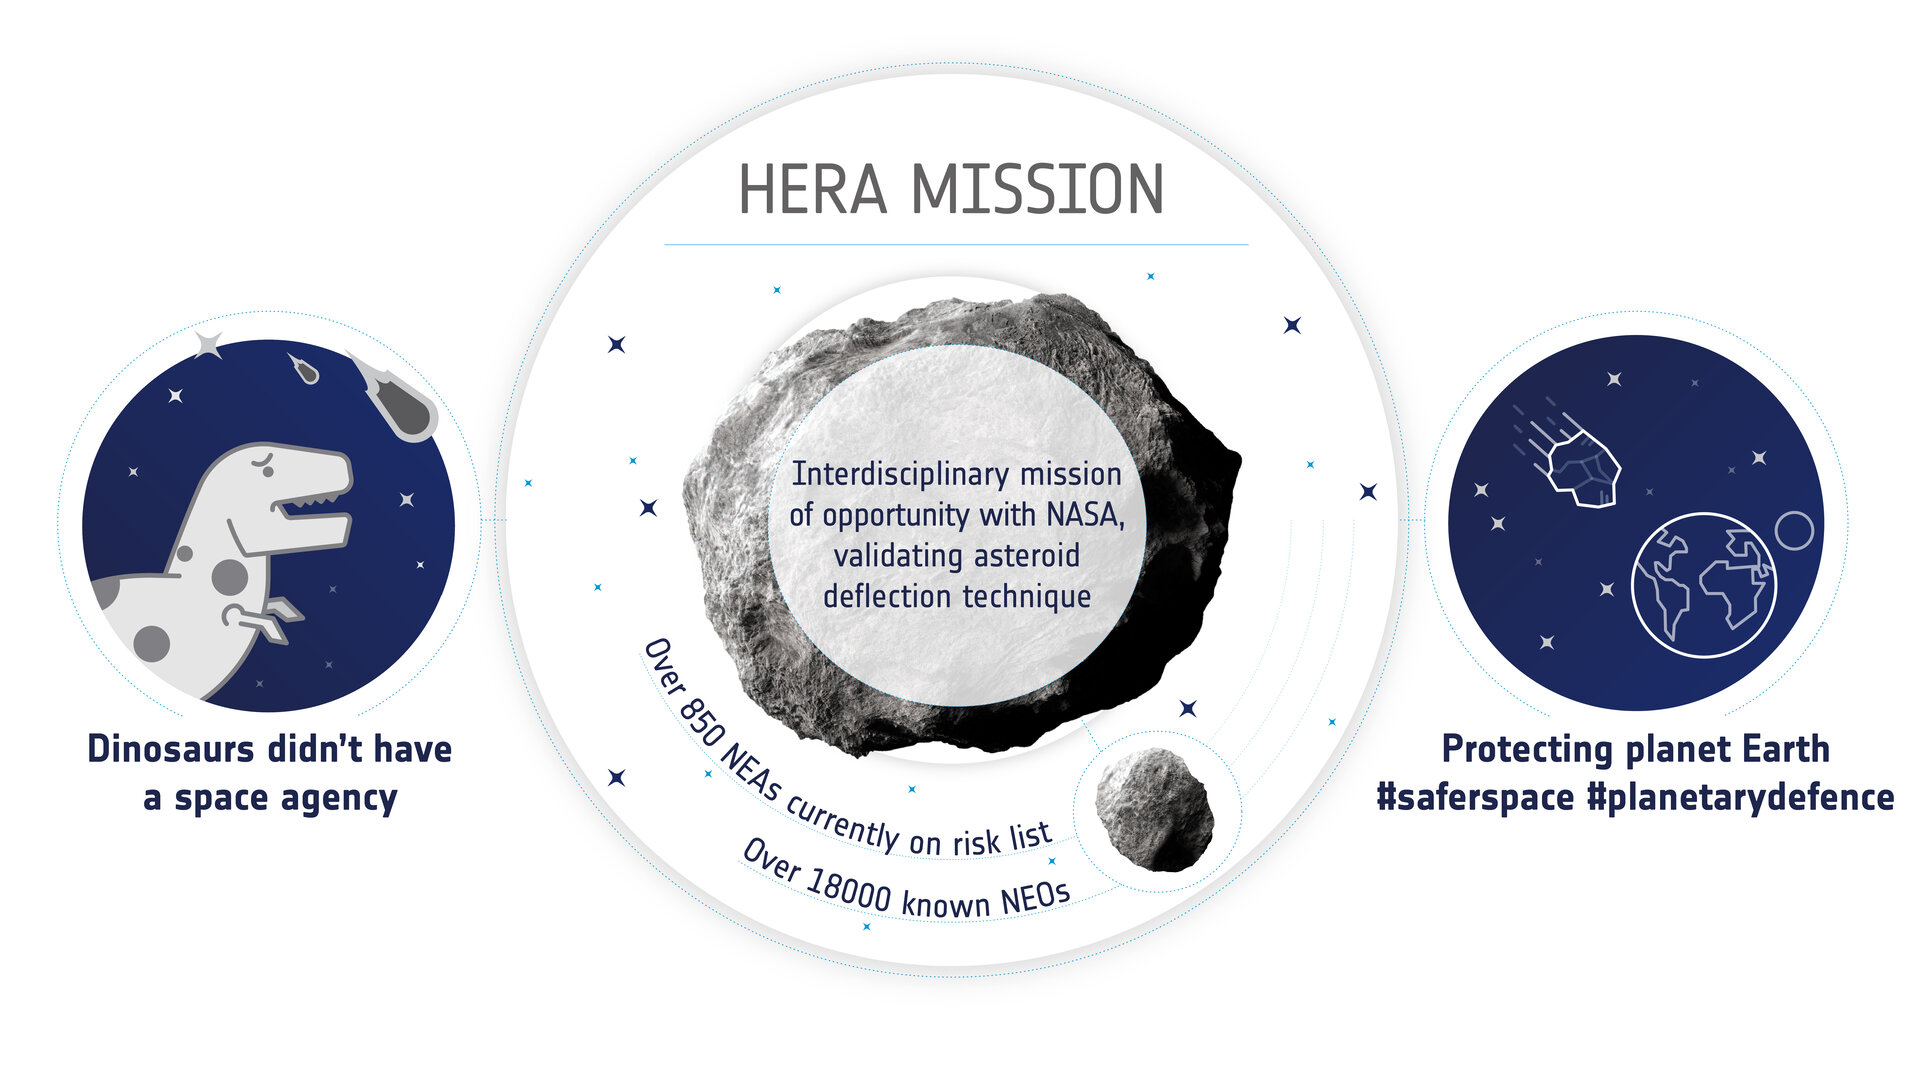 Hera mission overview